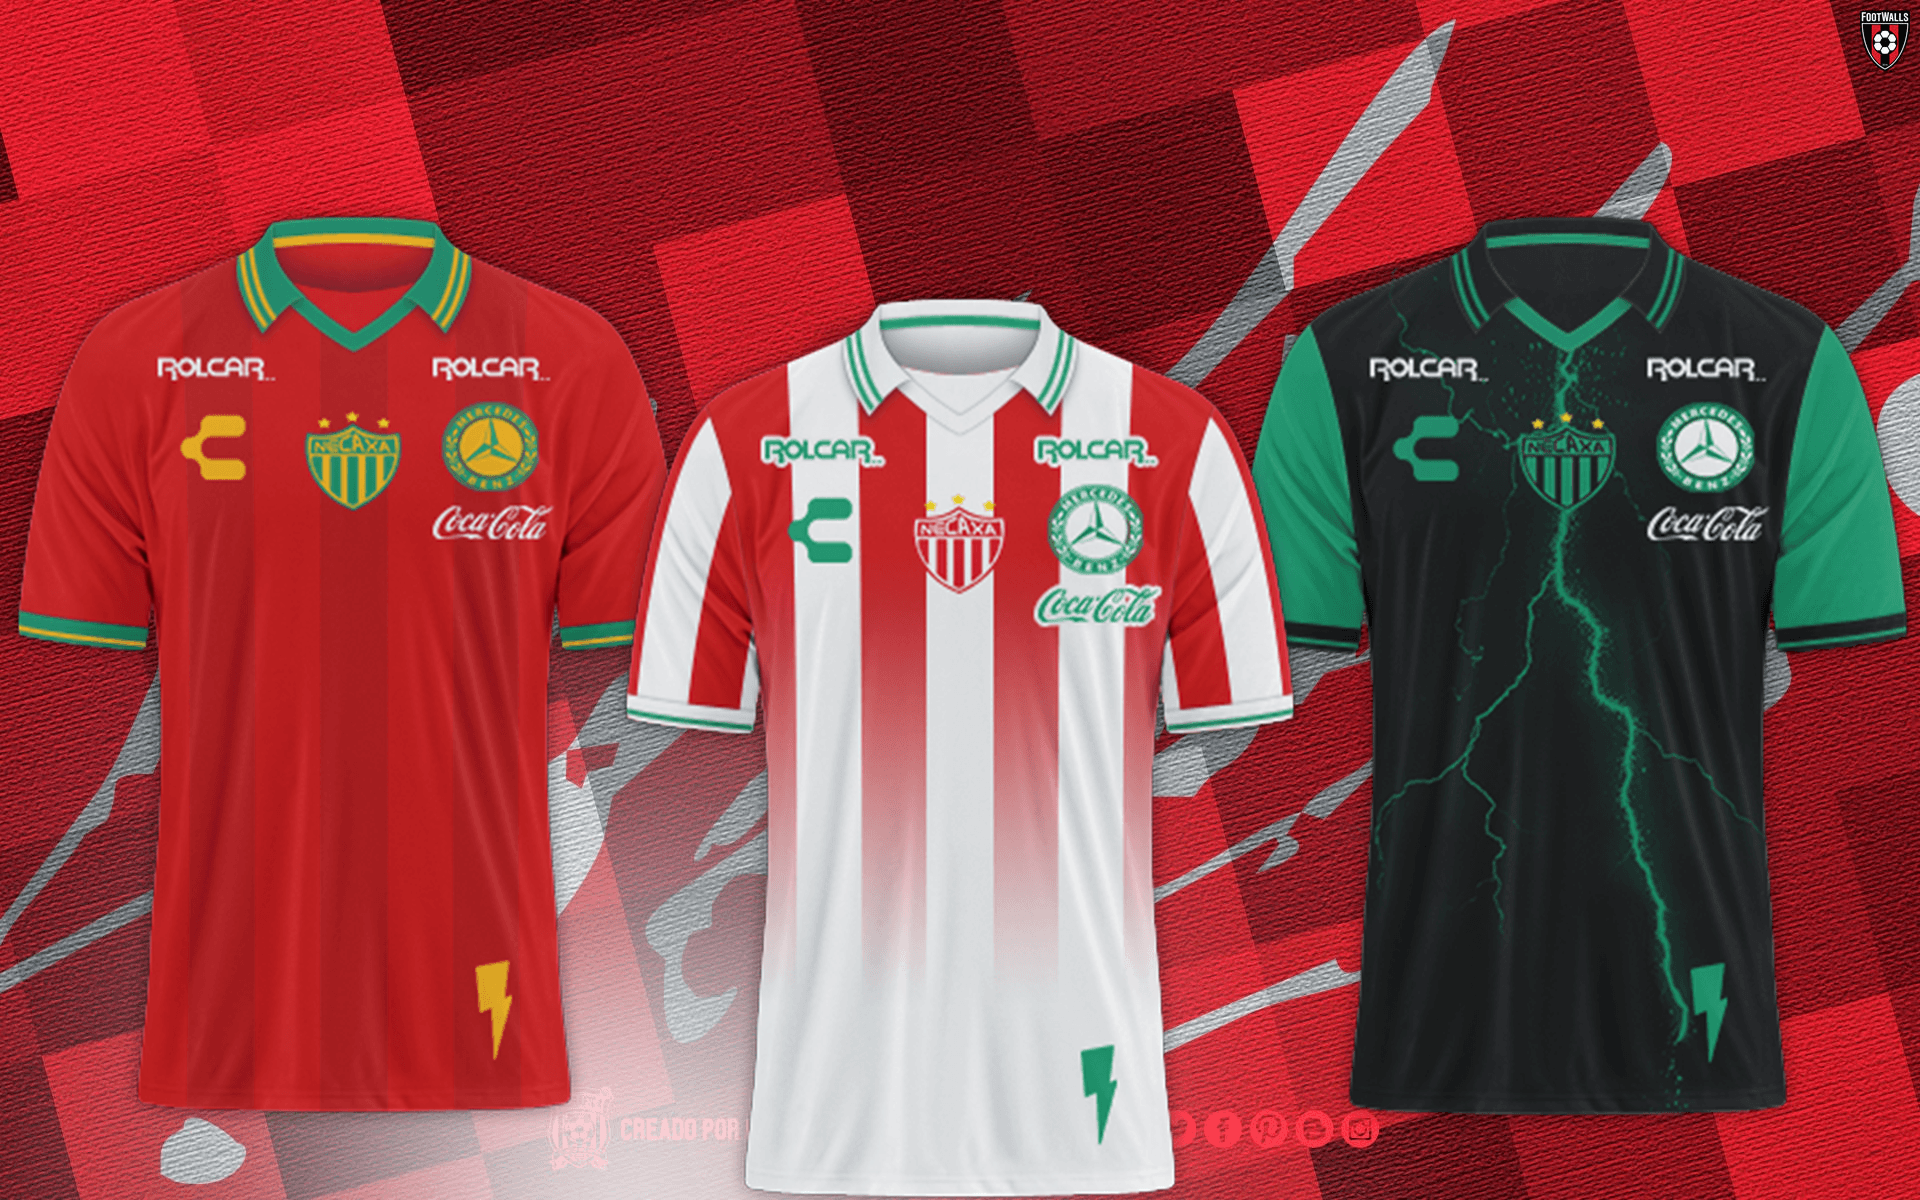 Club Necaxa/ Charly Kits